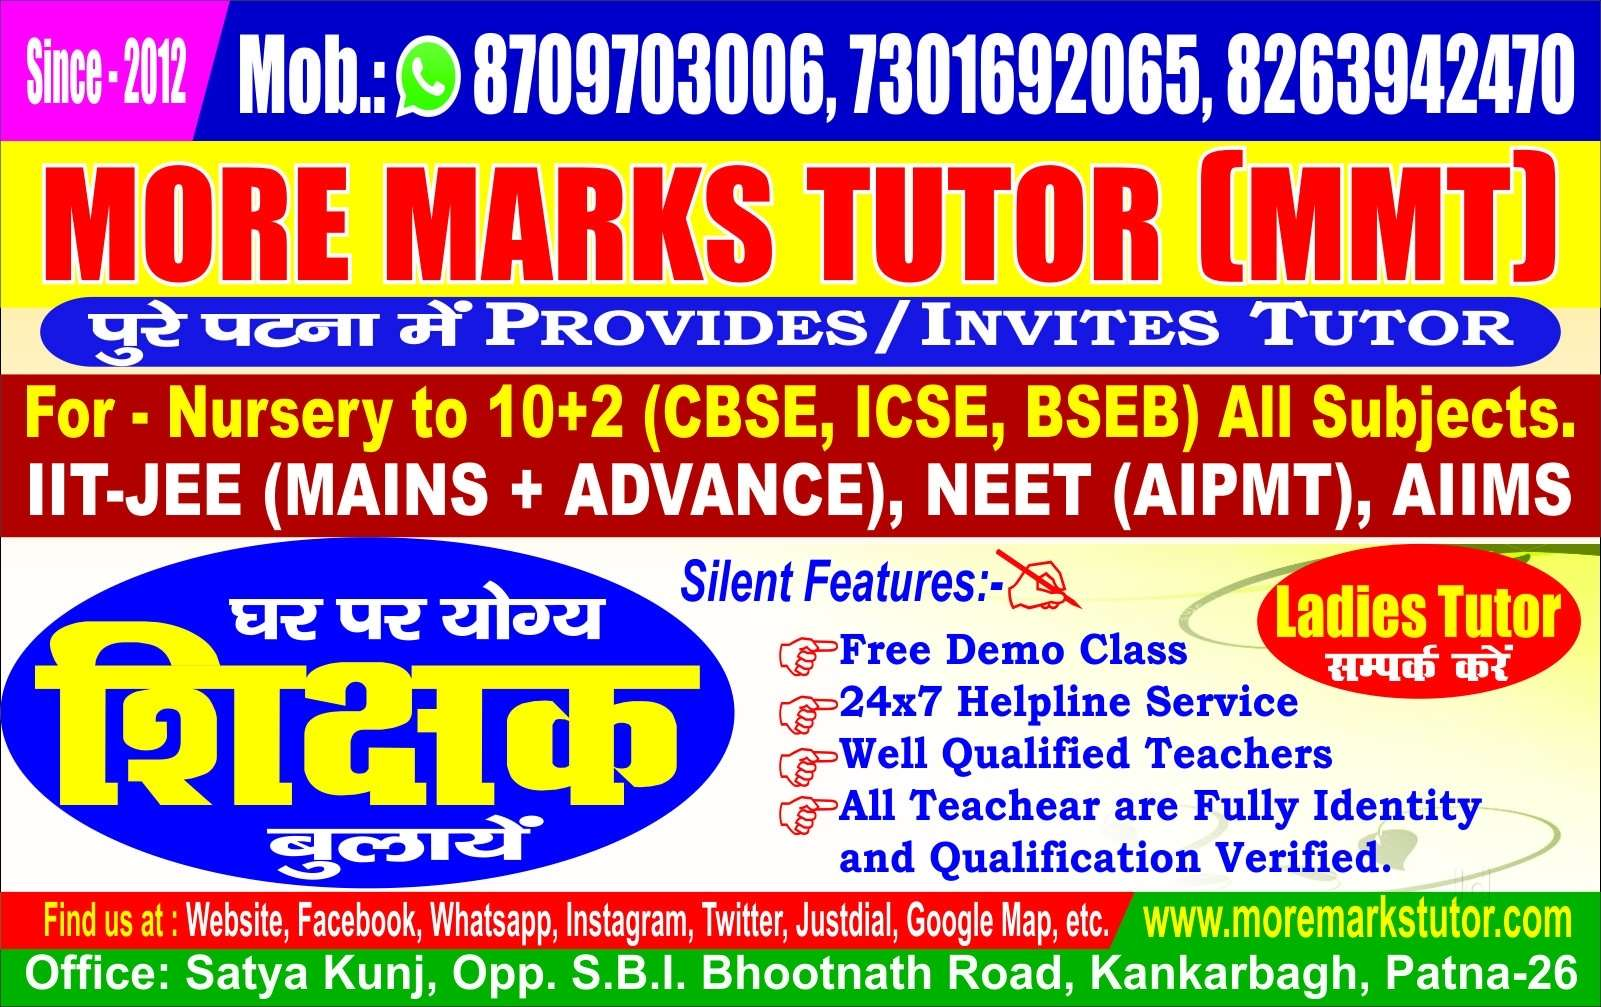 Top Home Tutors For Igcse Class Xii Physics In Bh Colony Patna This Would Be Part C Ofsection 2 Electricity Of The